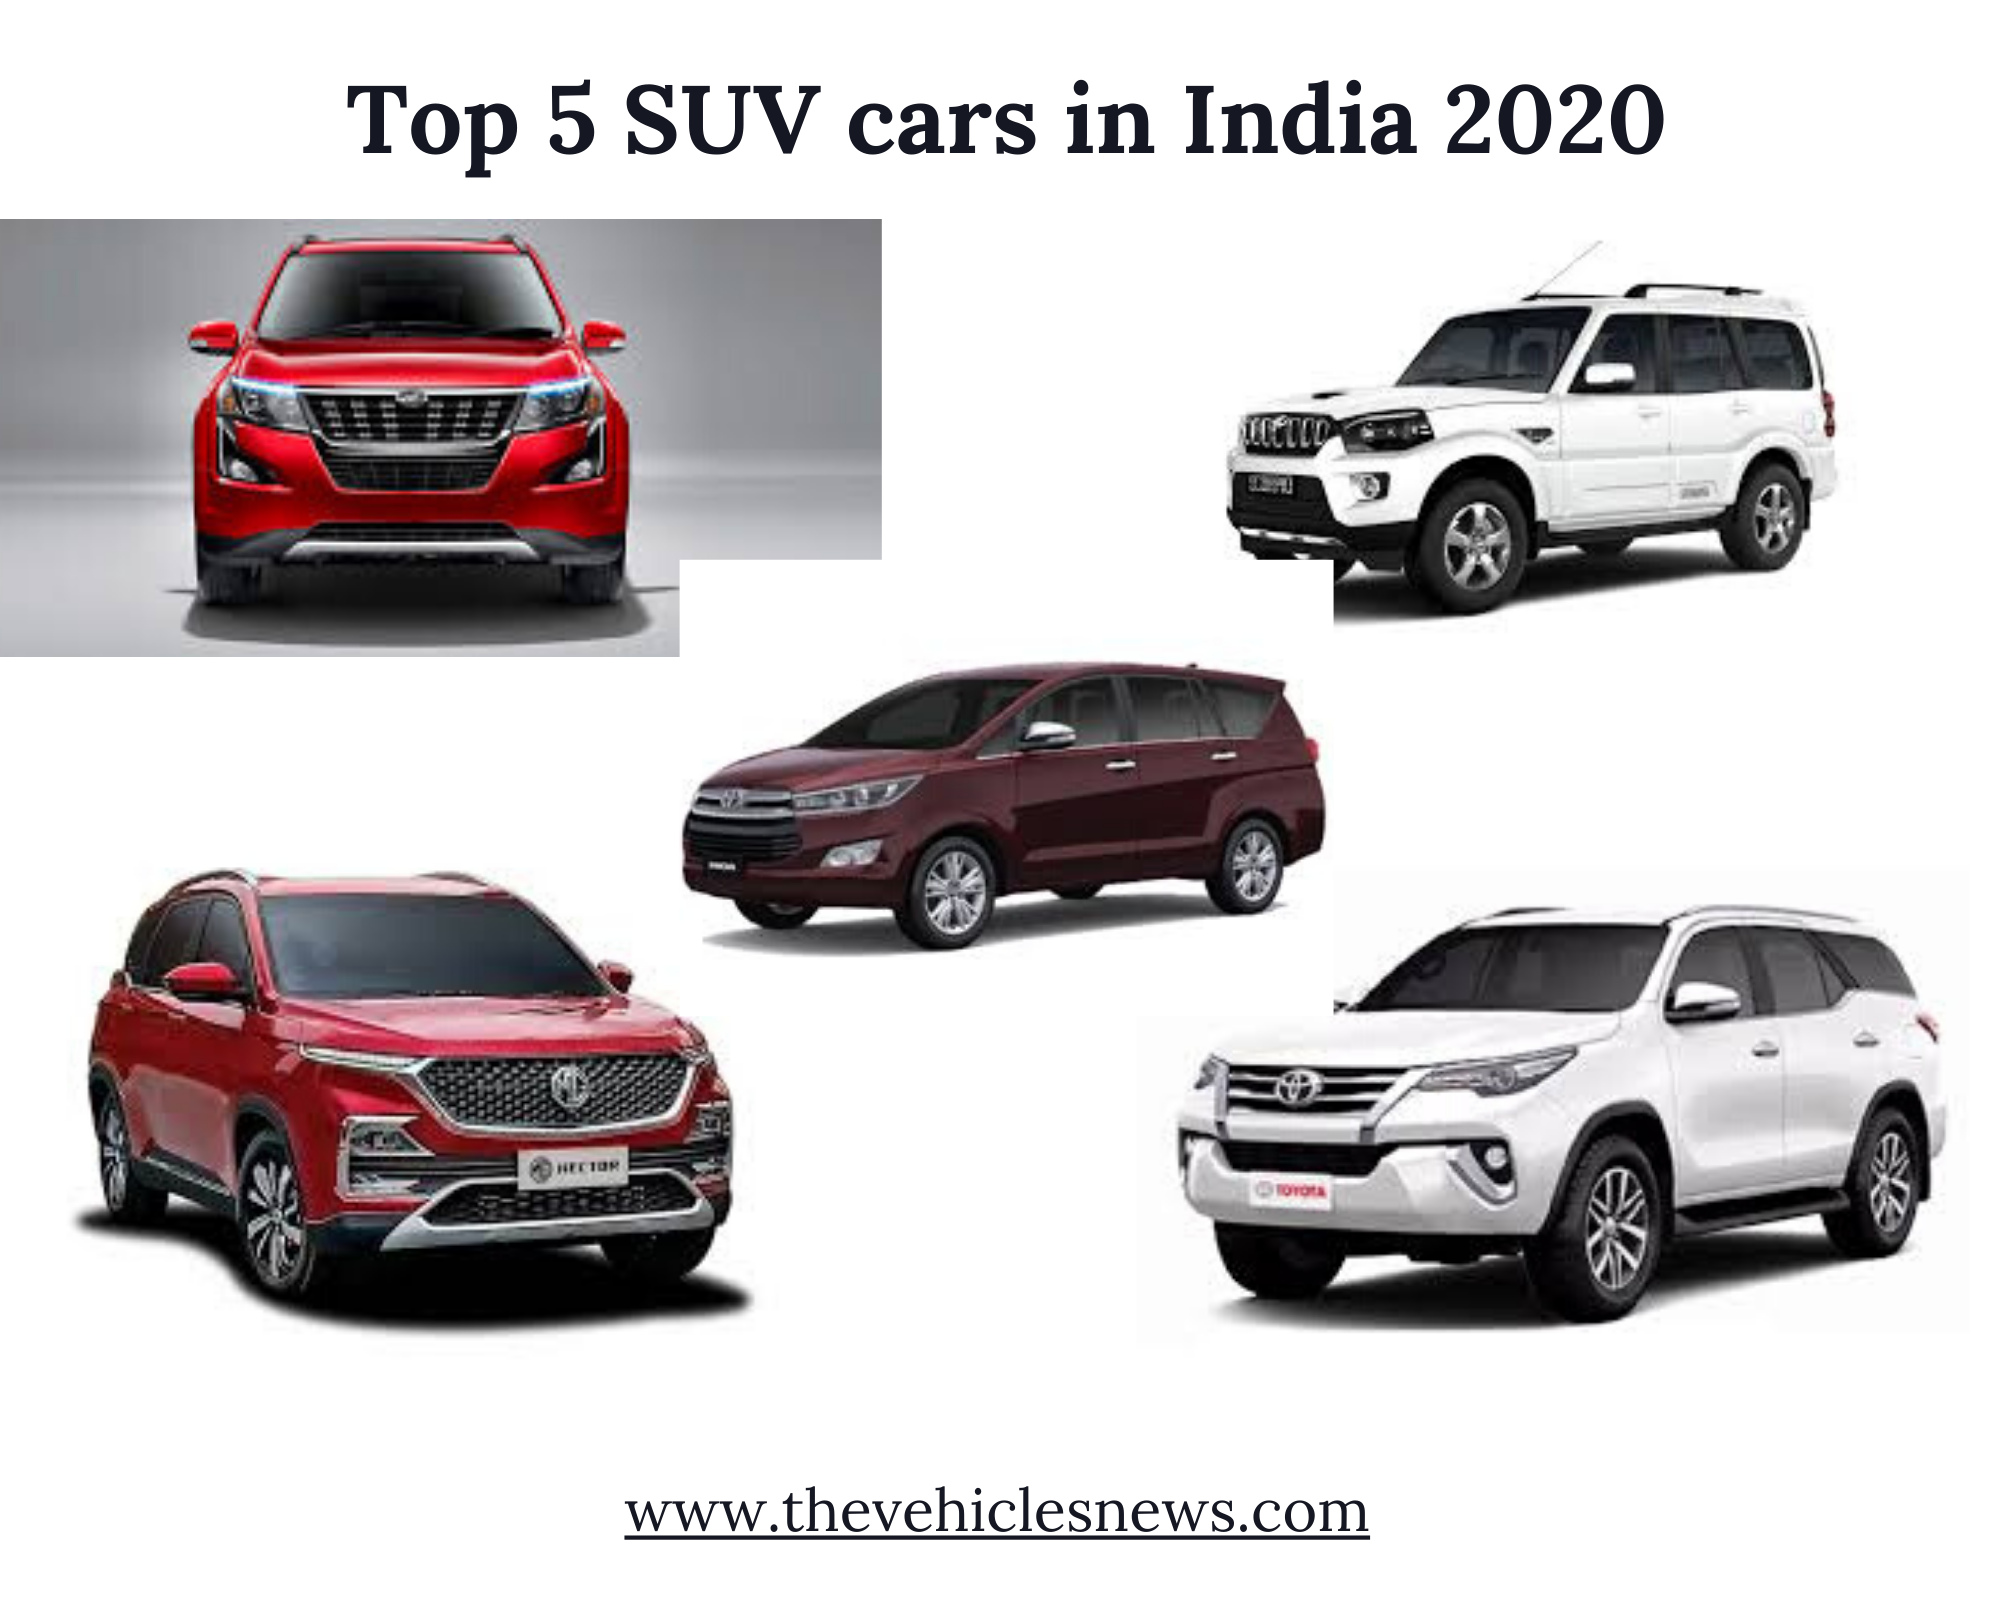 By Automobile Magazines News Exploring Top 5 Suv Cars In India 2020 By The Vehicle News Medium